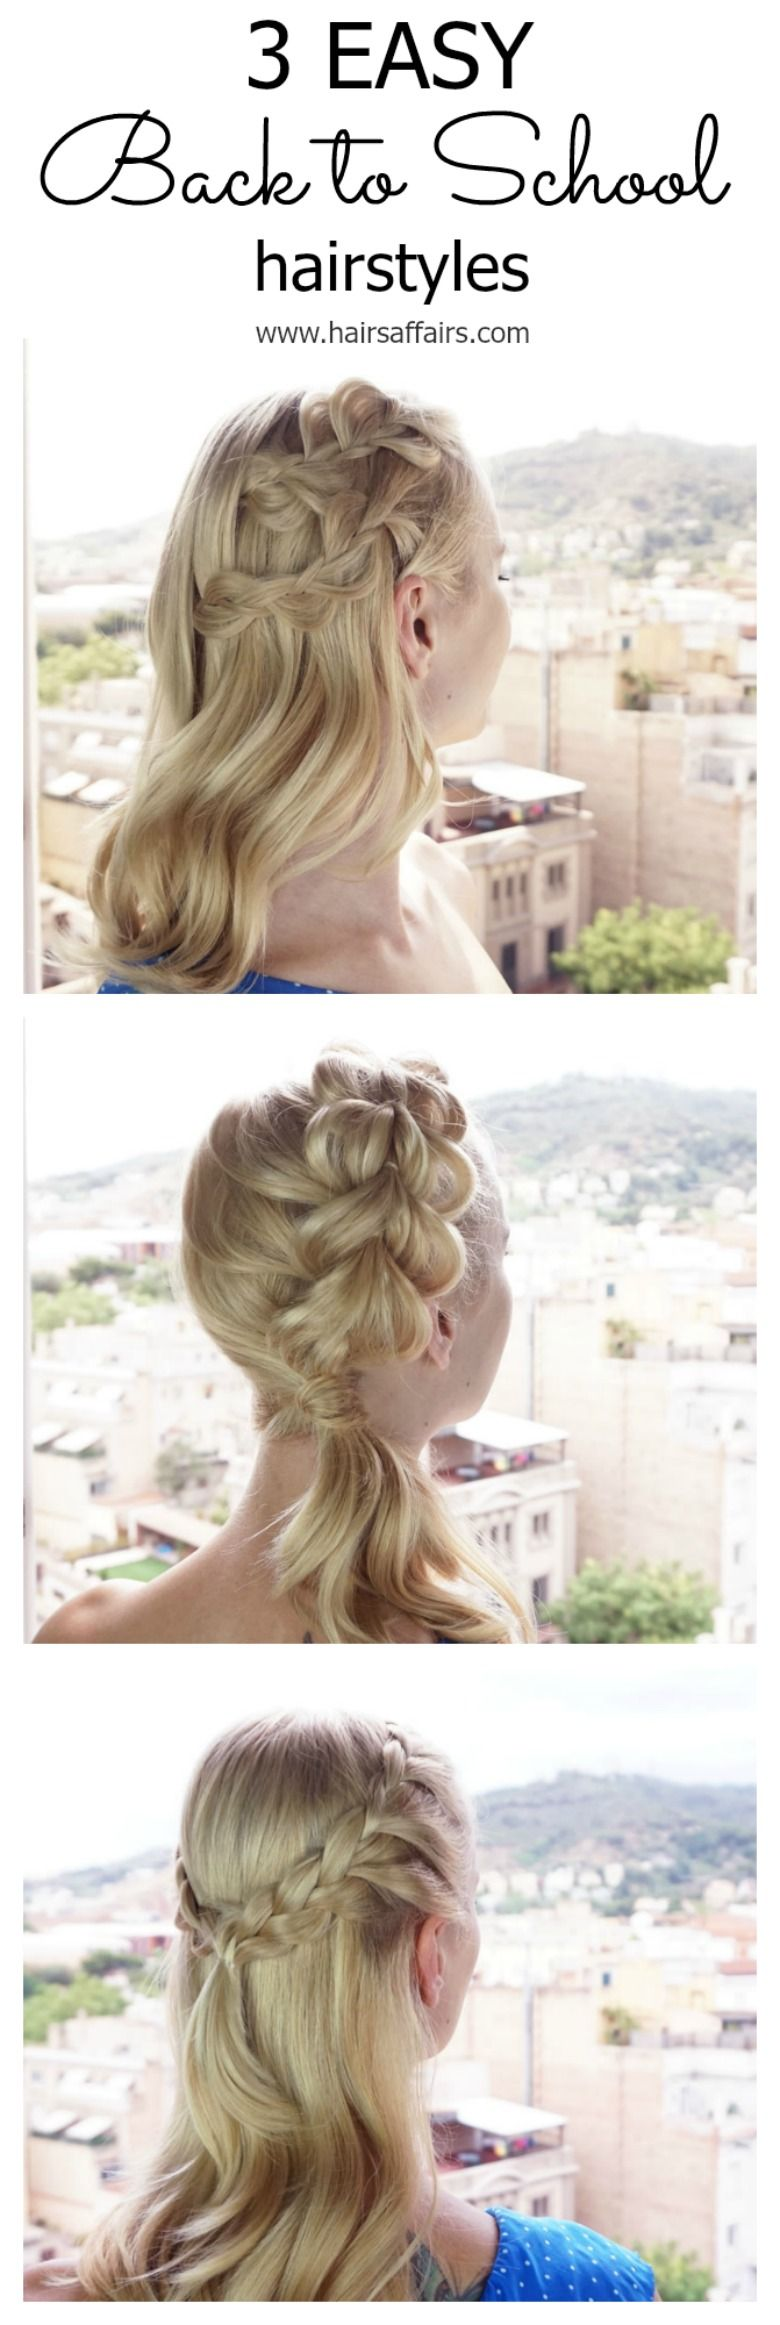 easy back to school hairstyles school hairstyles school and easy